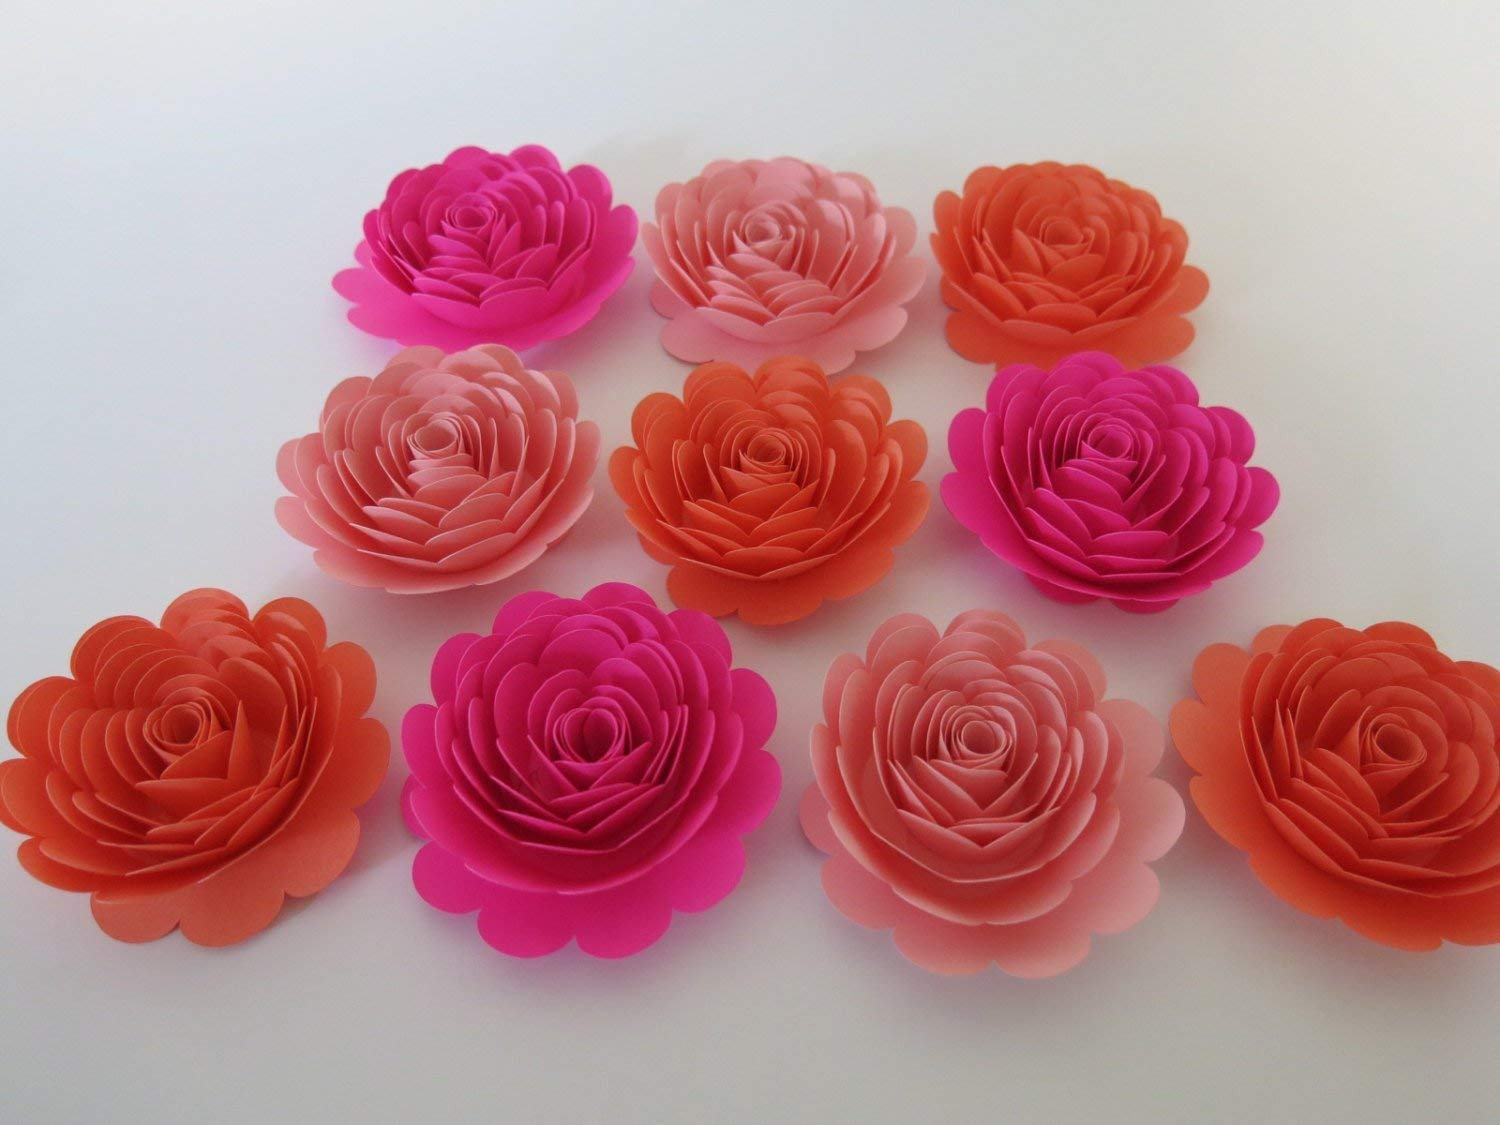 Amazon Shades Of Pink Roses Set 10 Big 3 Paper Flowers Princess Theme Birthday Party Decor Baby Nursery Wall Art Girl Shower Decorations